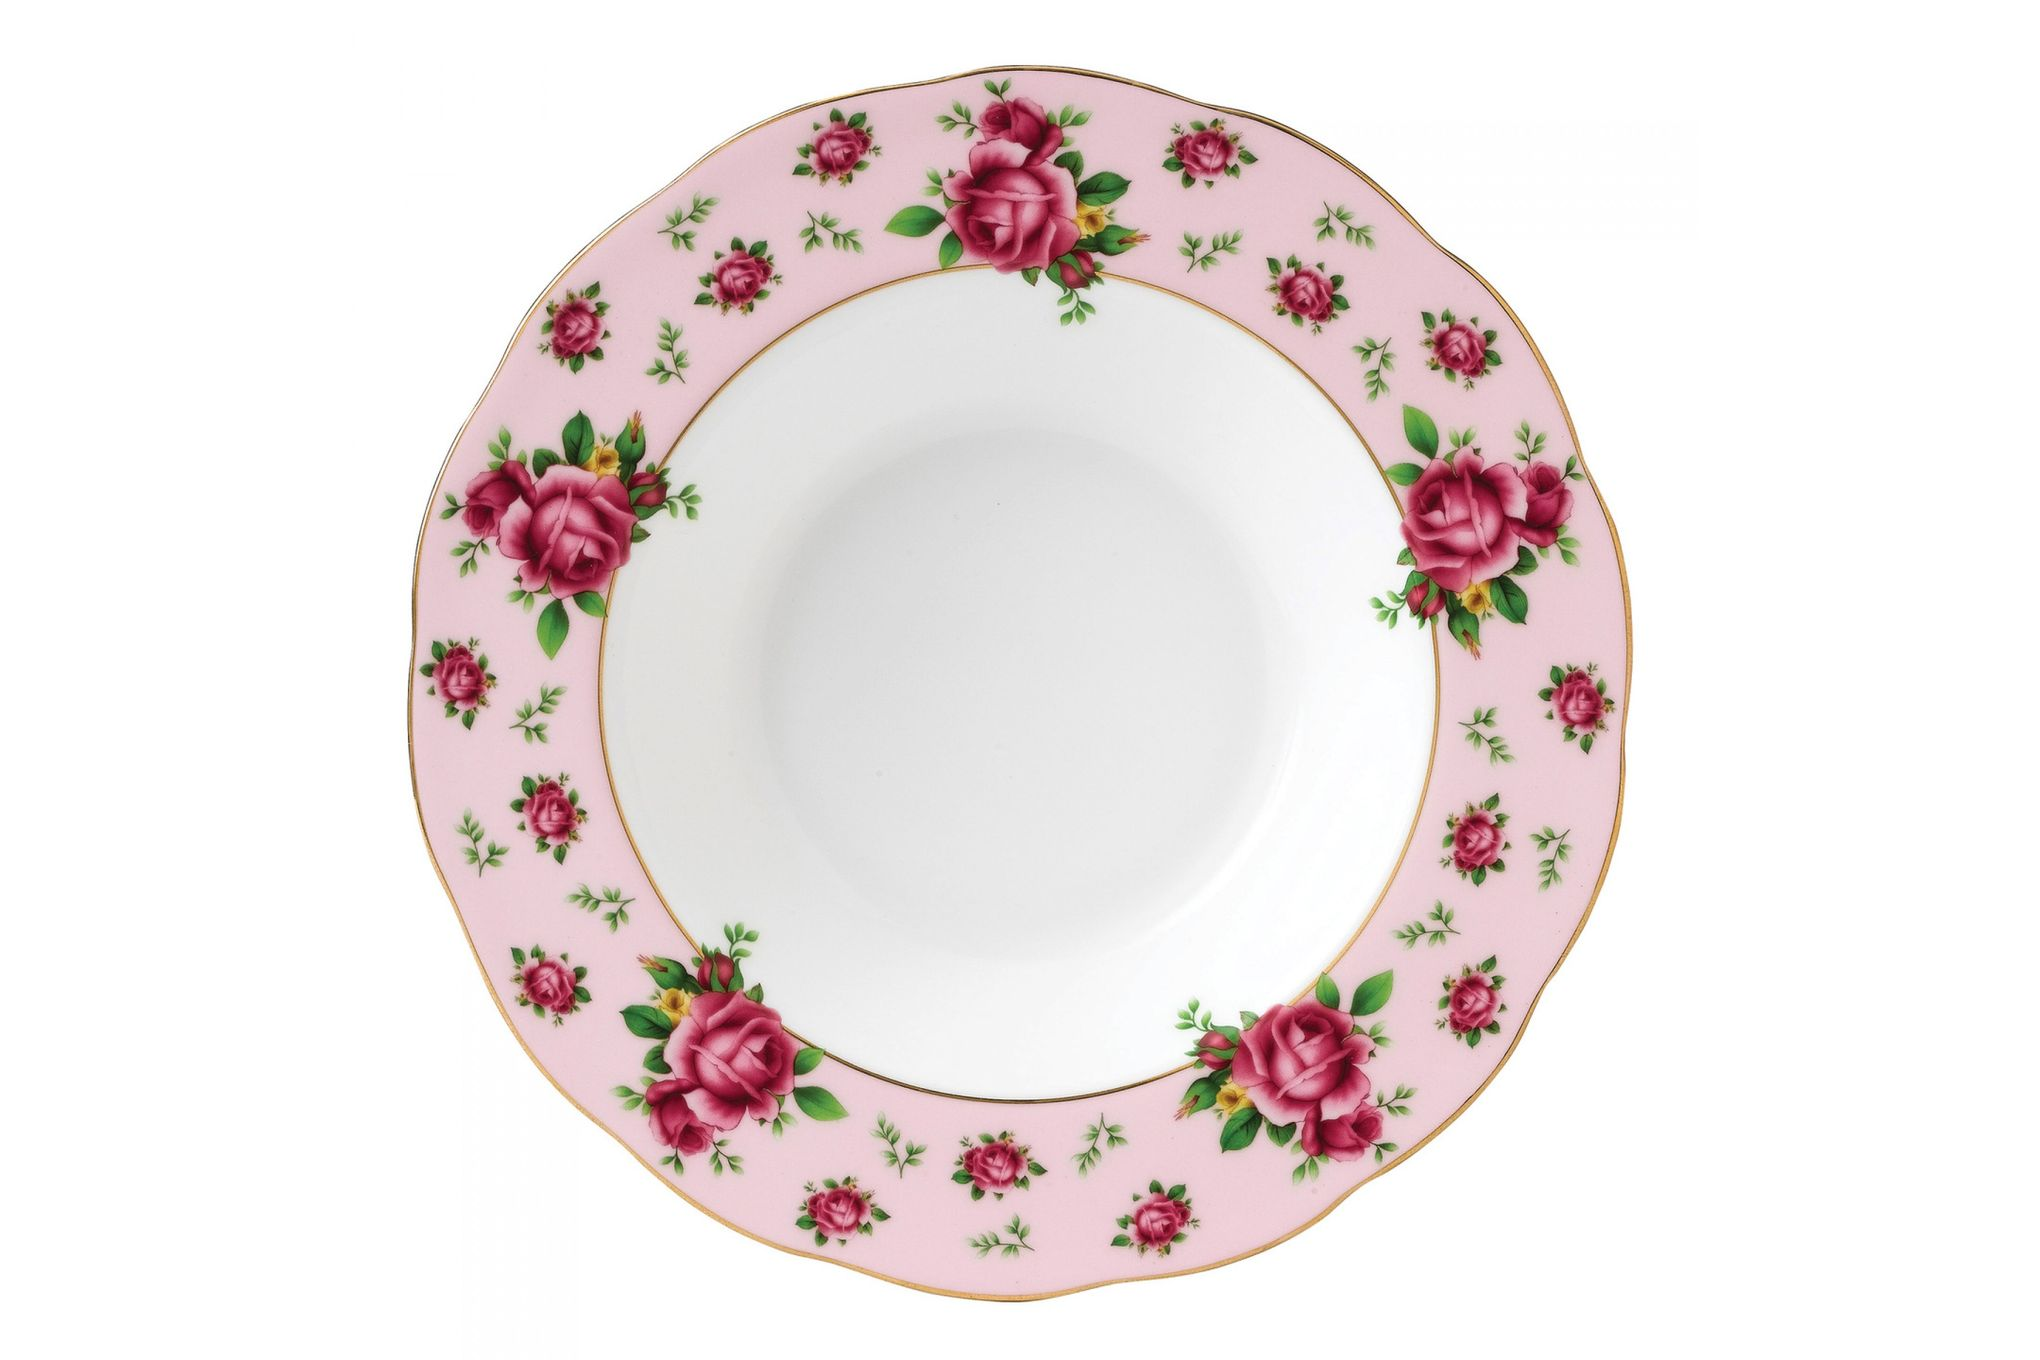 Royal Albert New Country Roses Pink Rimmed Bowl 24cm thumb 1